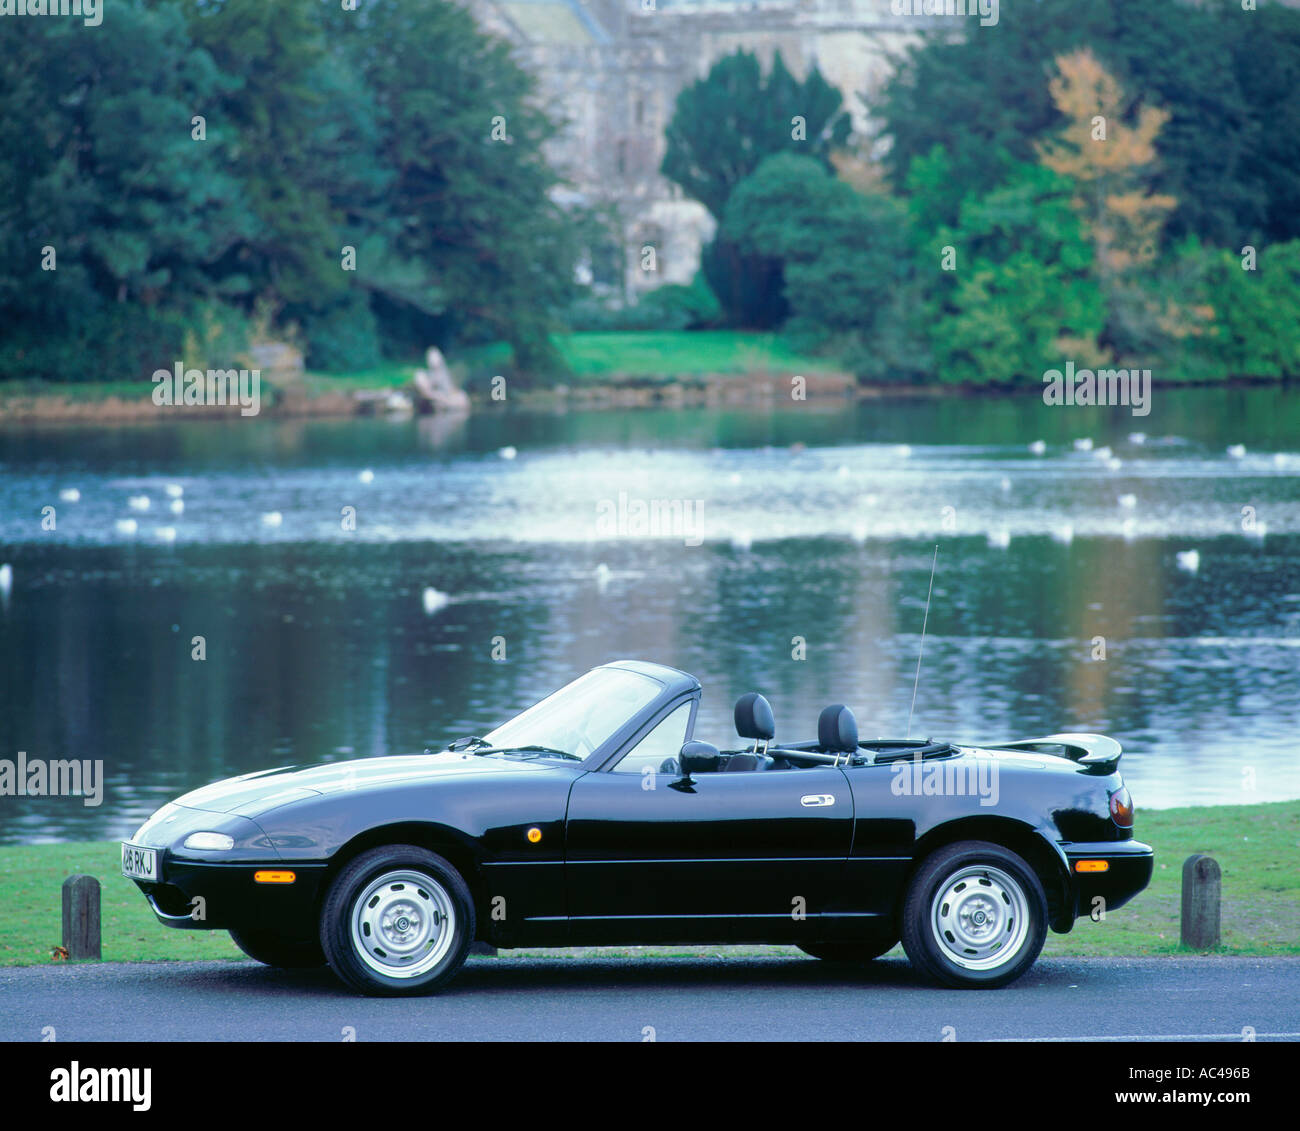 Black Mazda Stock Photos & Black Mazda Stock Images - Alamy